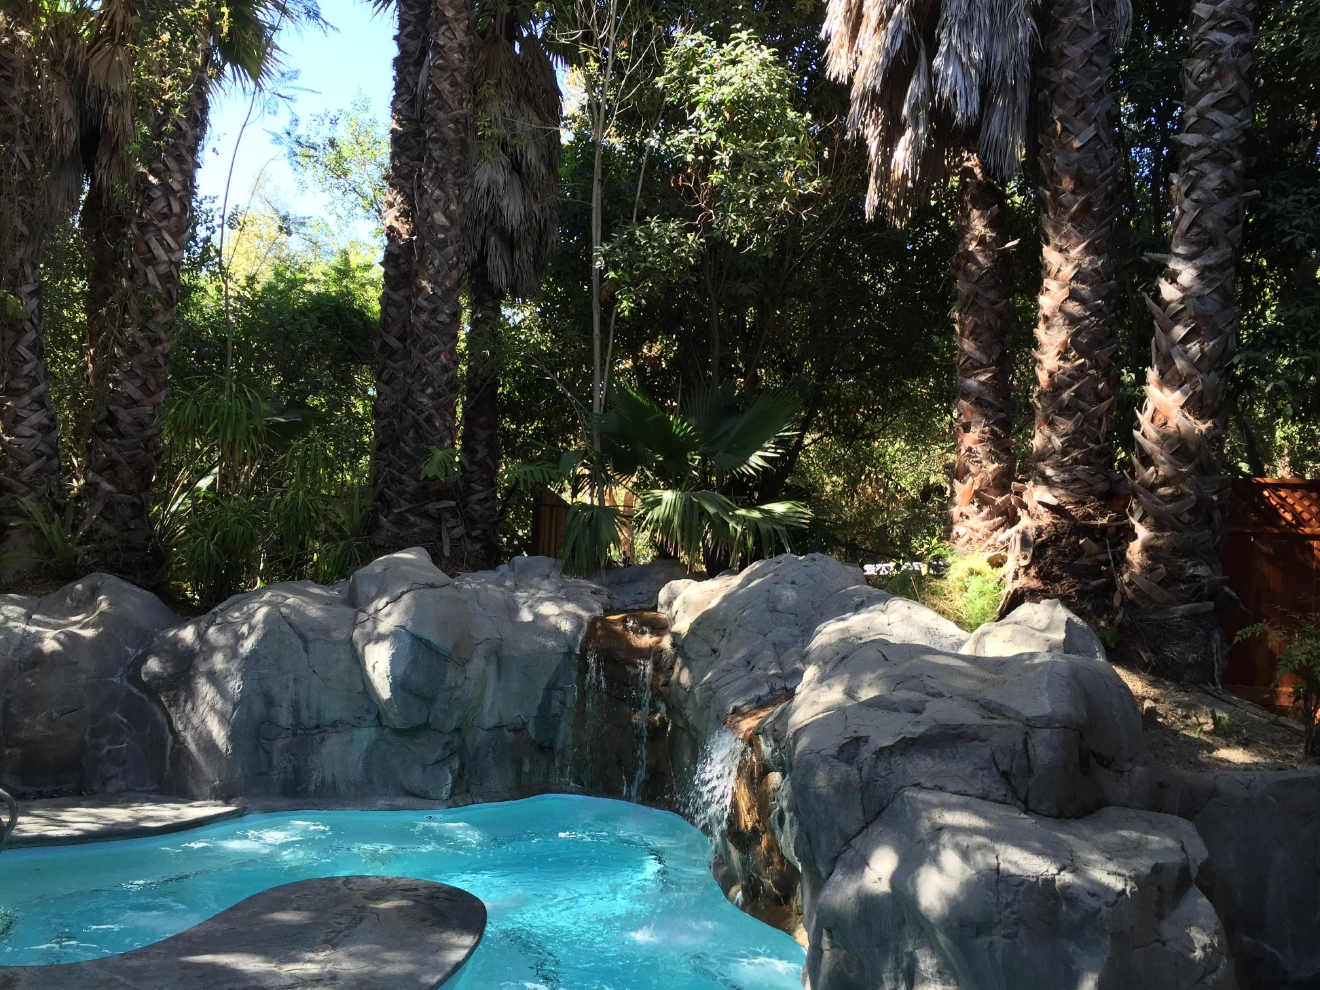 The Oasis Waterfall Lagoon at Sycamore Mineral Springs is perfect for groups of up to 30.